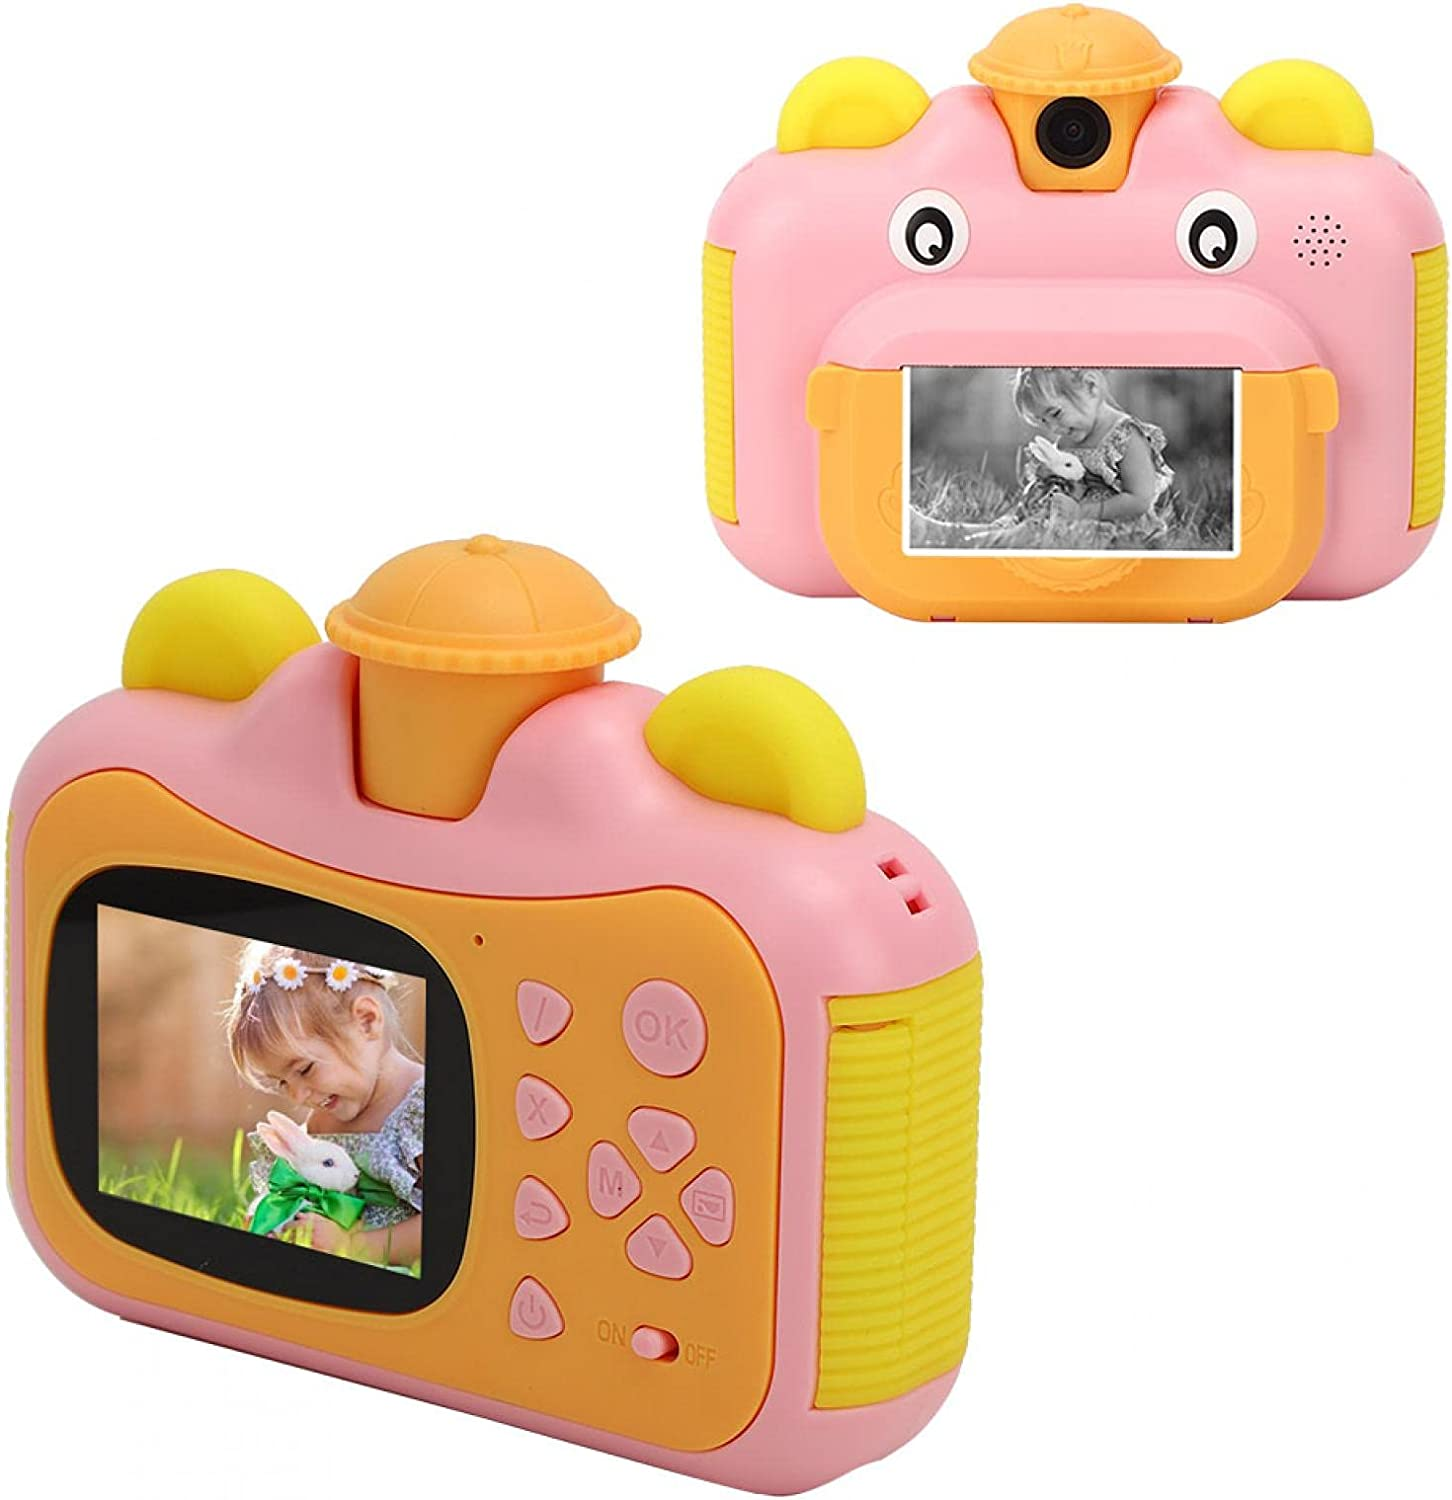 WNSC Direct sale of manufacturer Today's only DIY Camera Toy Kid Instant K Cute Digital Portable